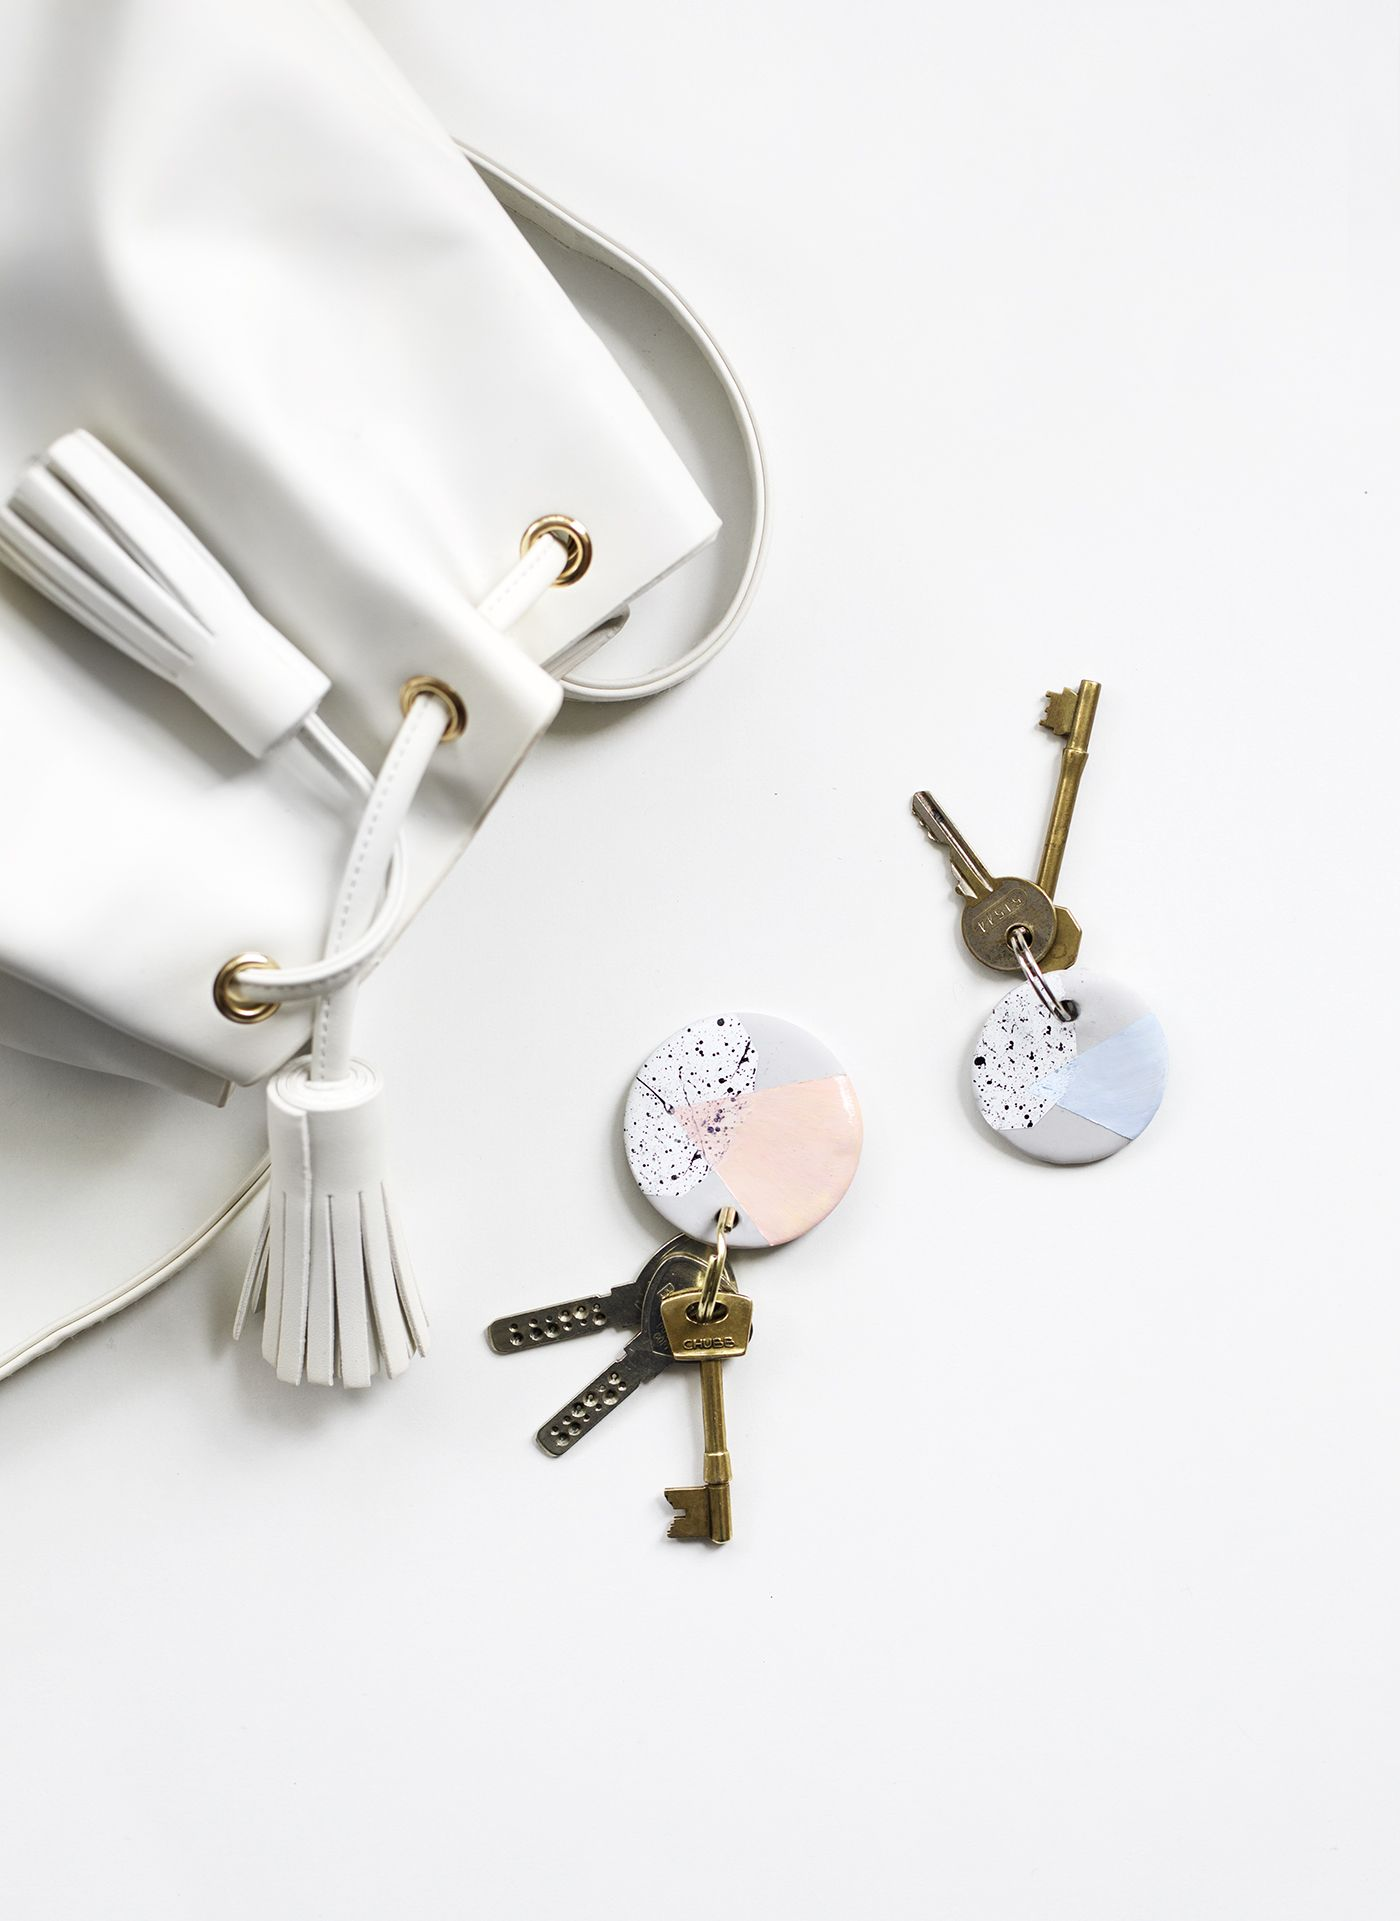 Photo of Sugar & Cloth: DIY Speckled Clay Keychains | The Lovely Drawer